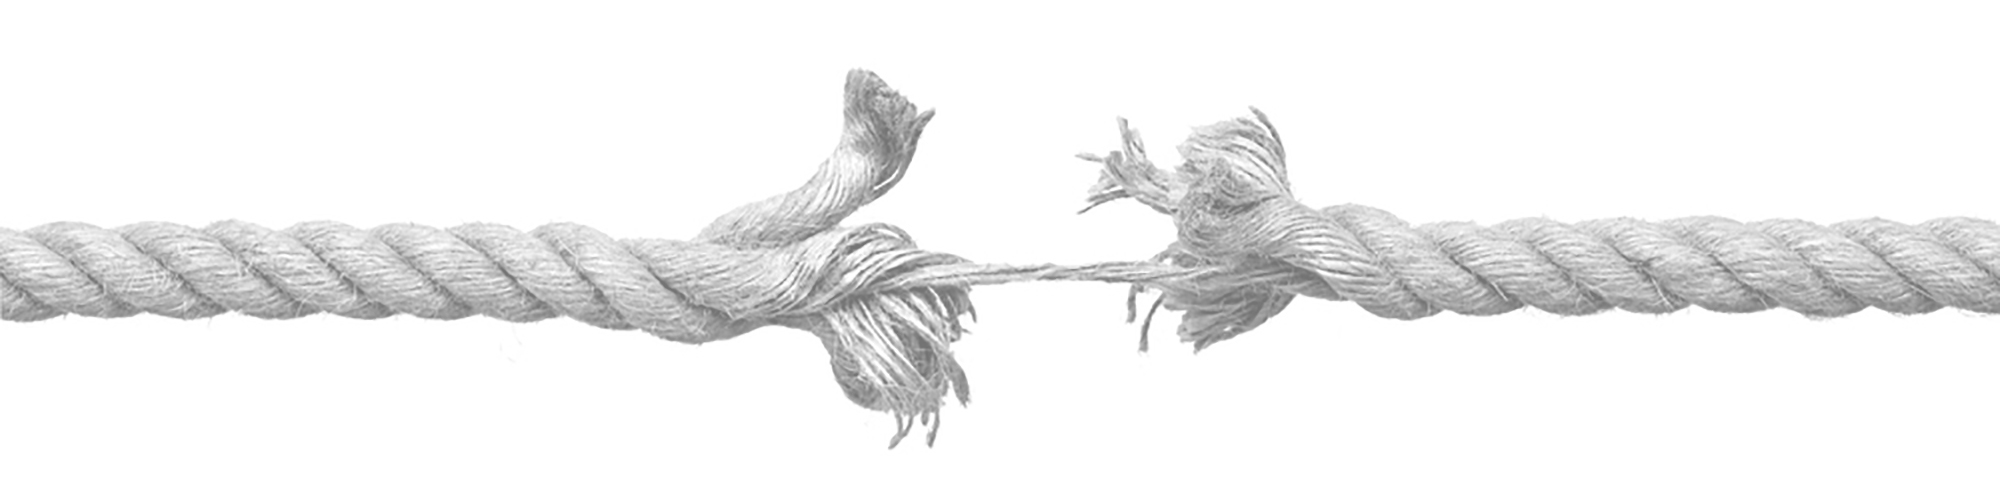 NYPI Homepage image of rope breaking